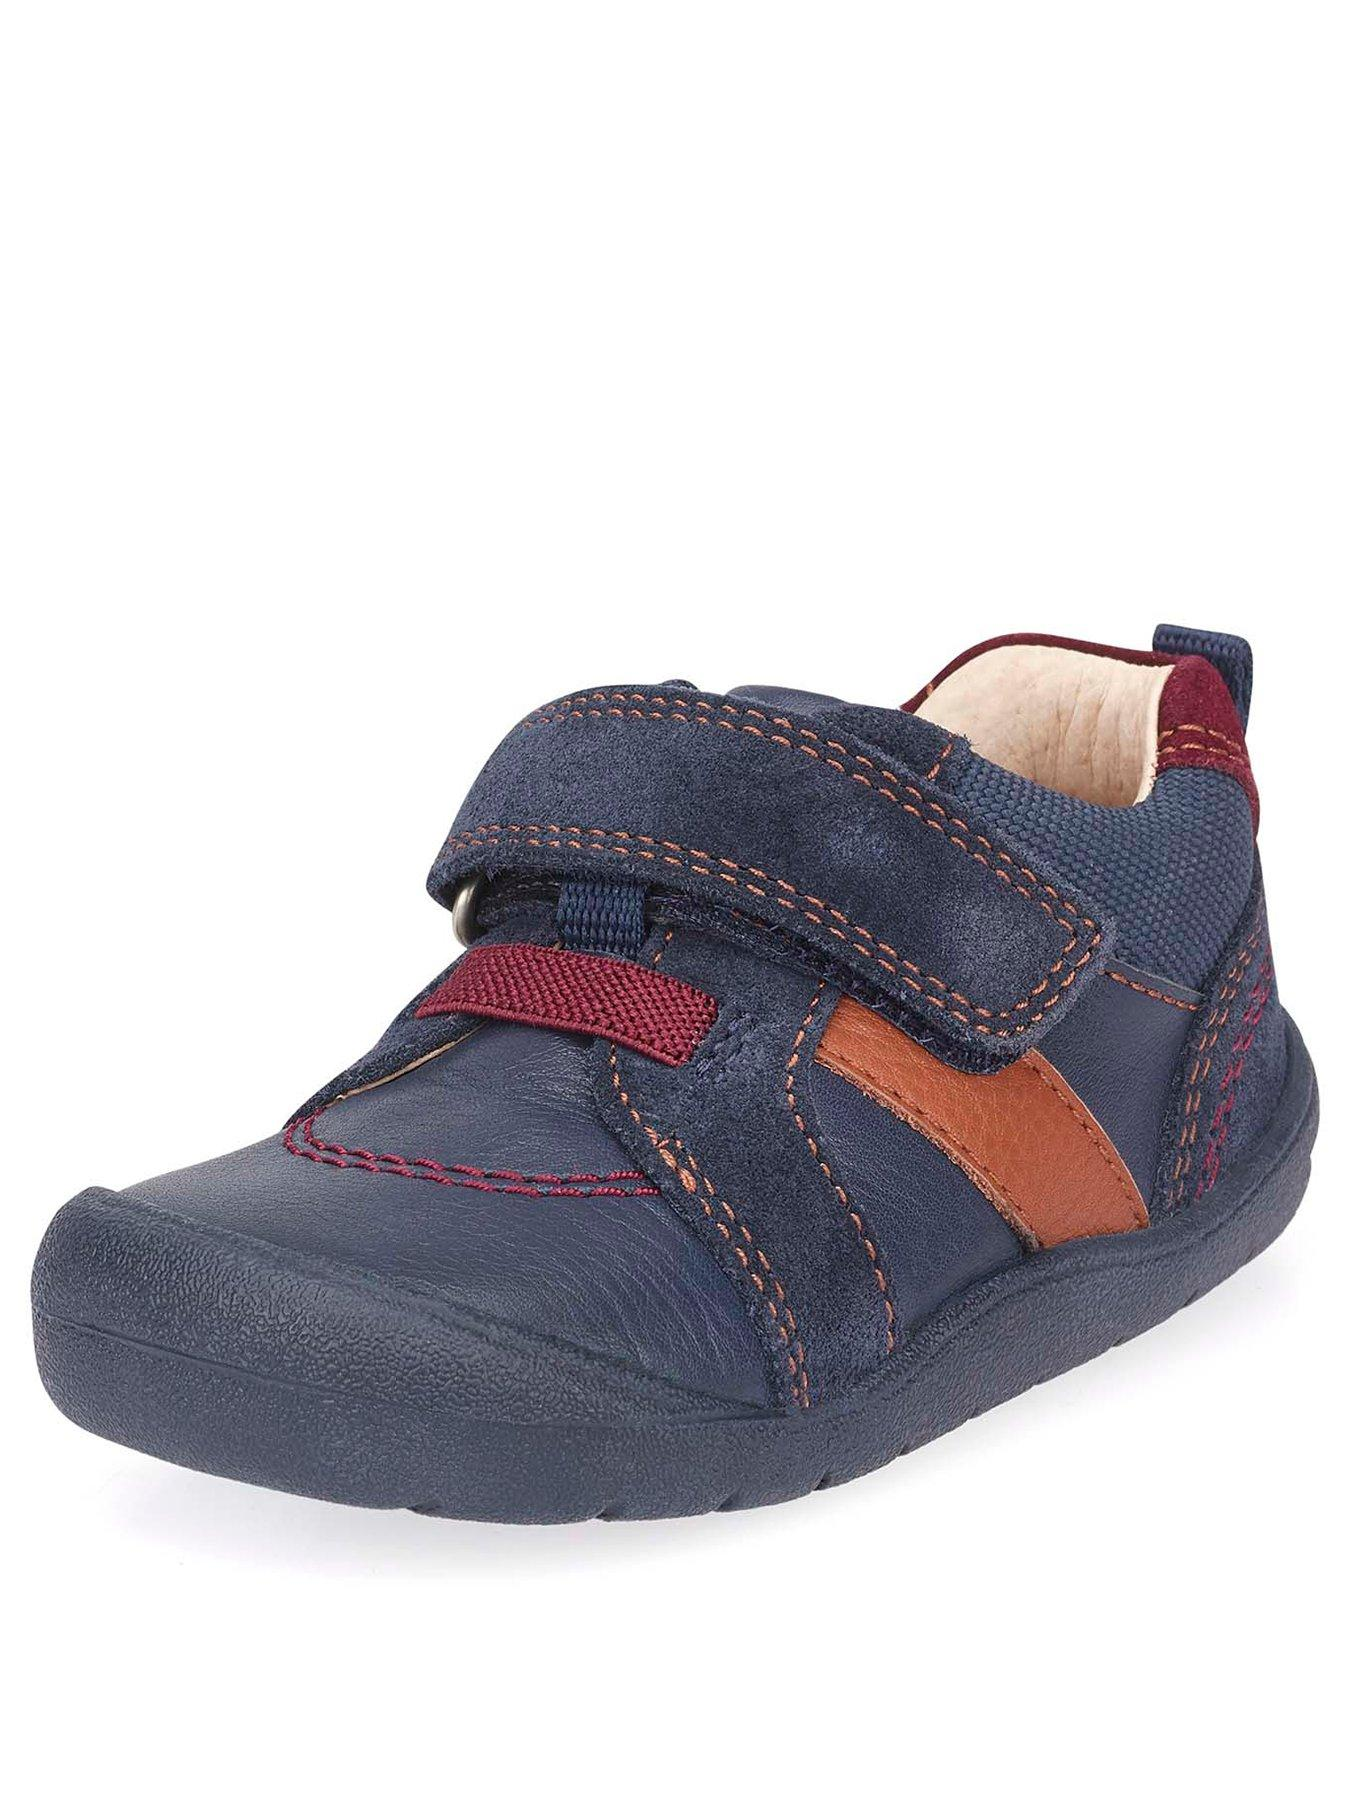 6.5 | H - Extra Wide Fit | Shoes